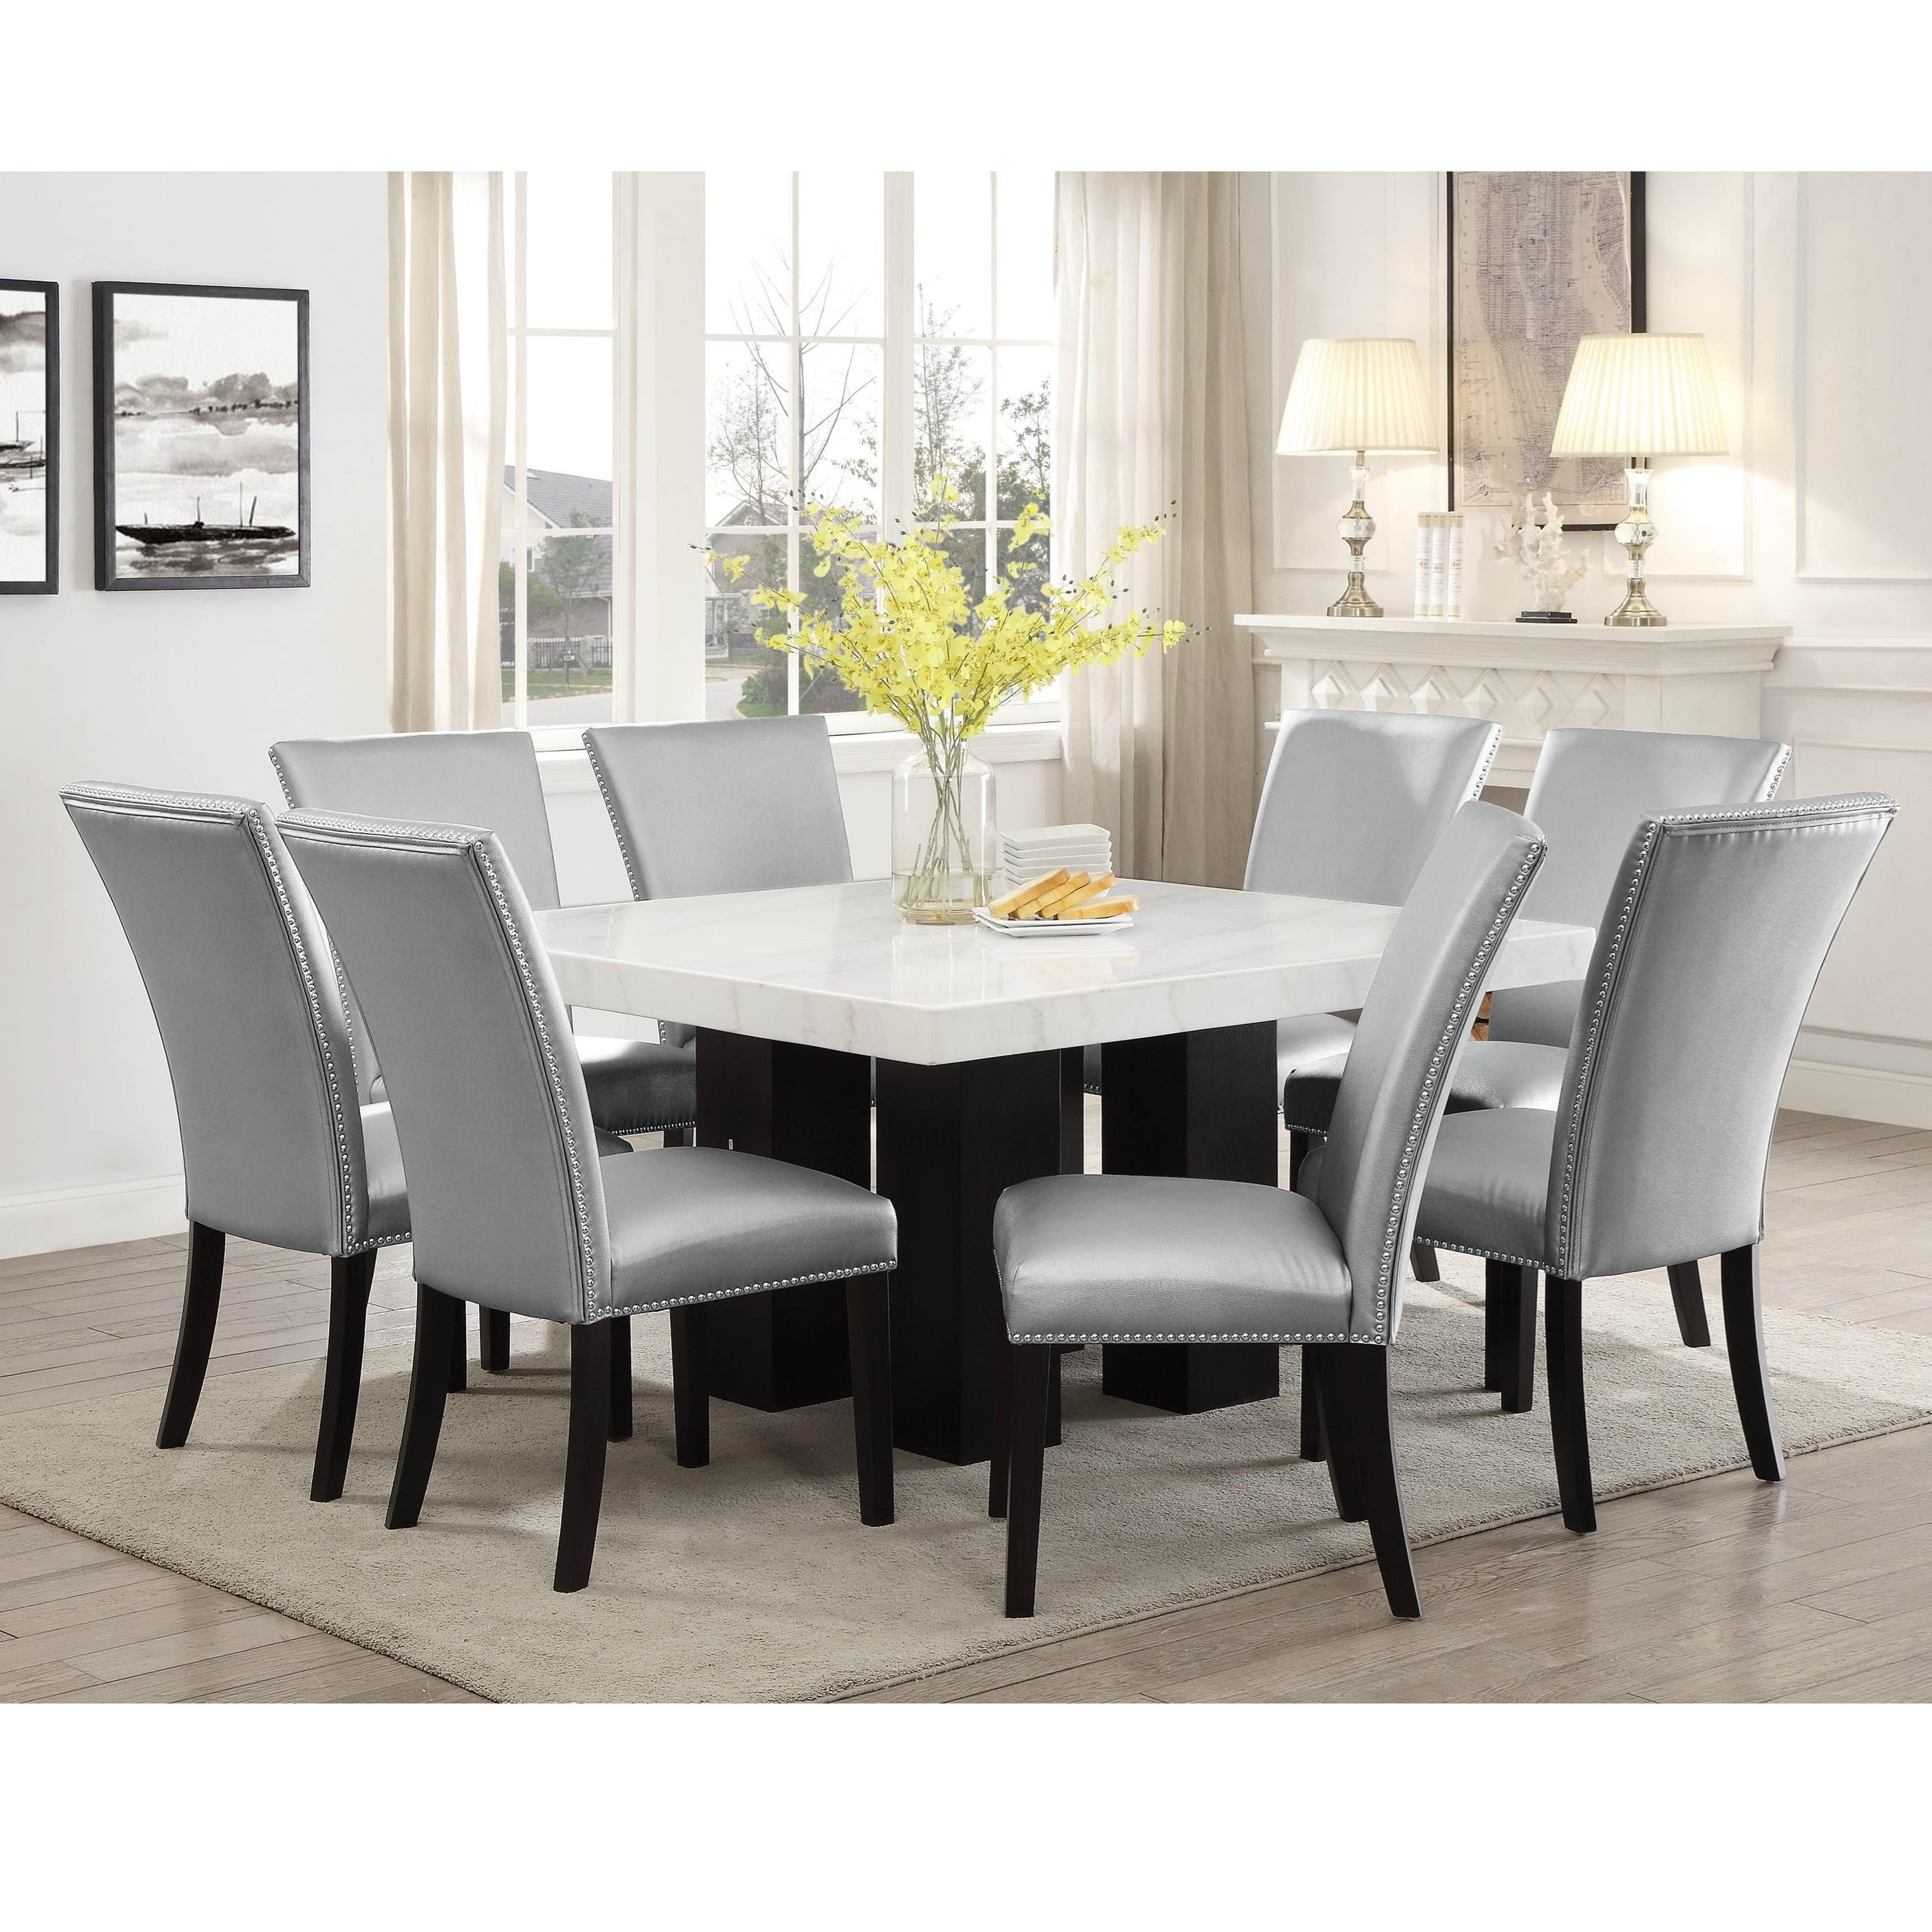 Camila 9 Piece Dining Set by Star at EFO Furniture Outlet